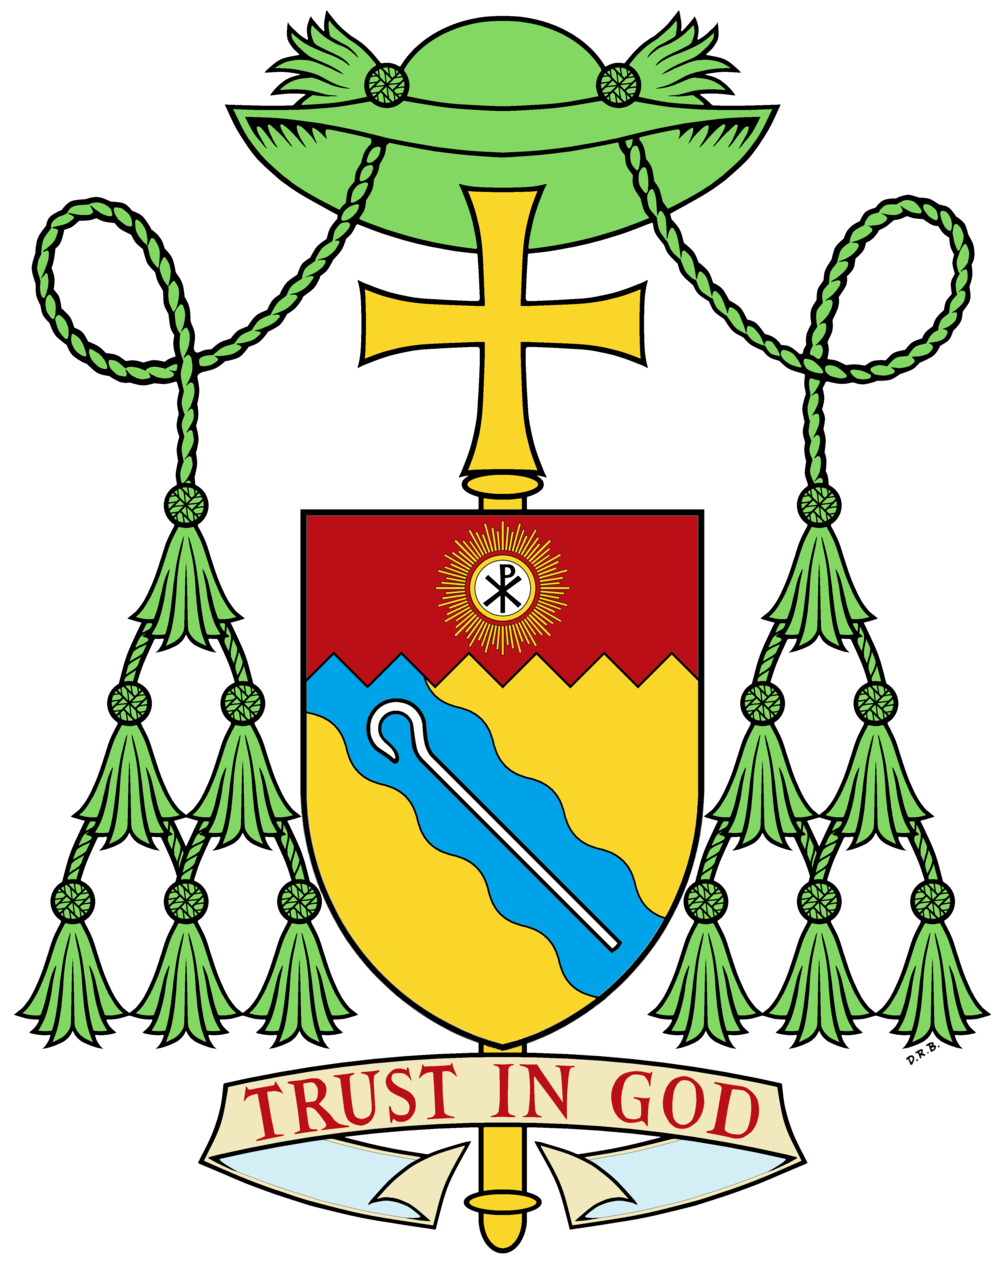 - 7th BISHOP OF THEDIOCESE OF DUNEDIN